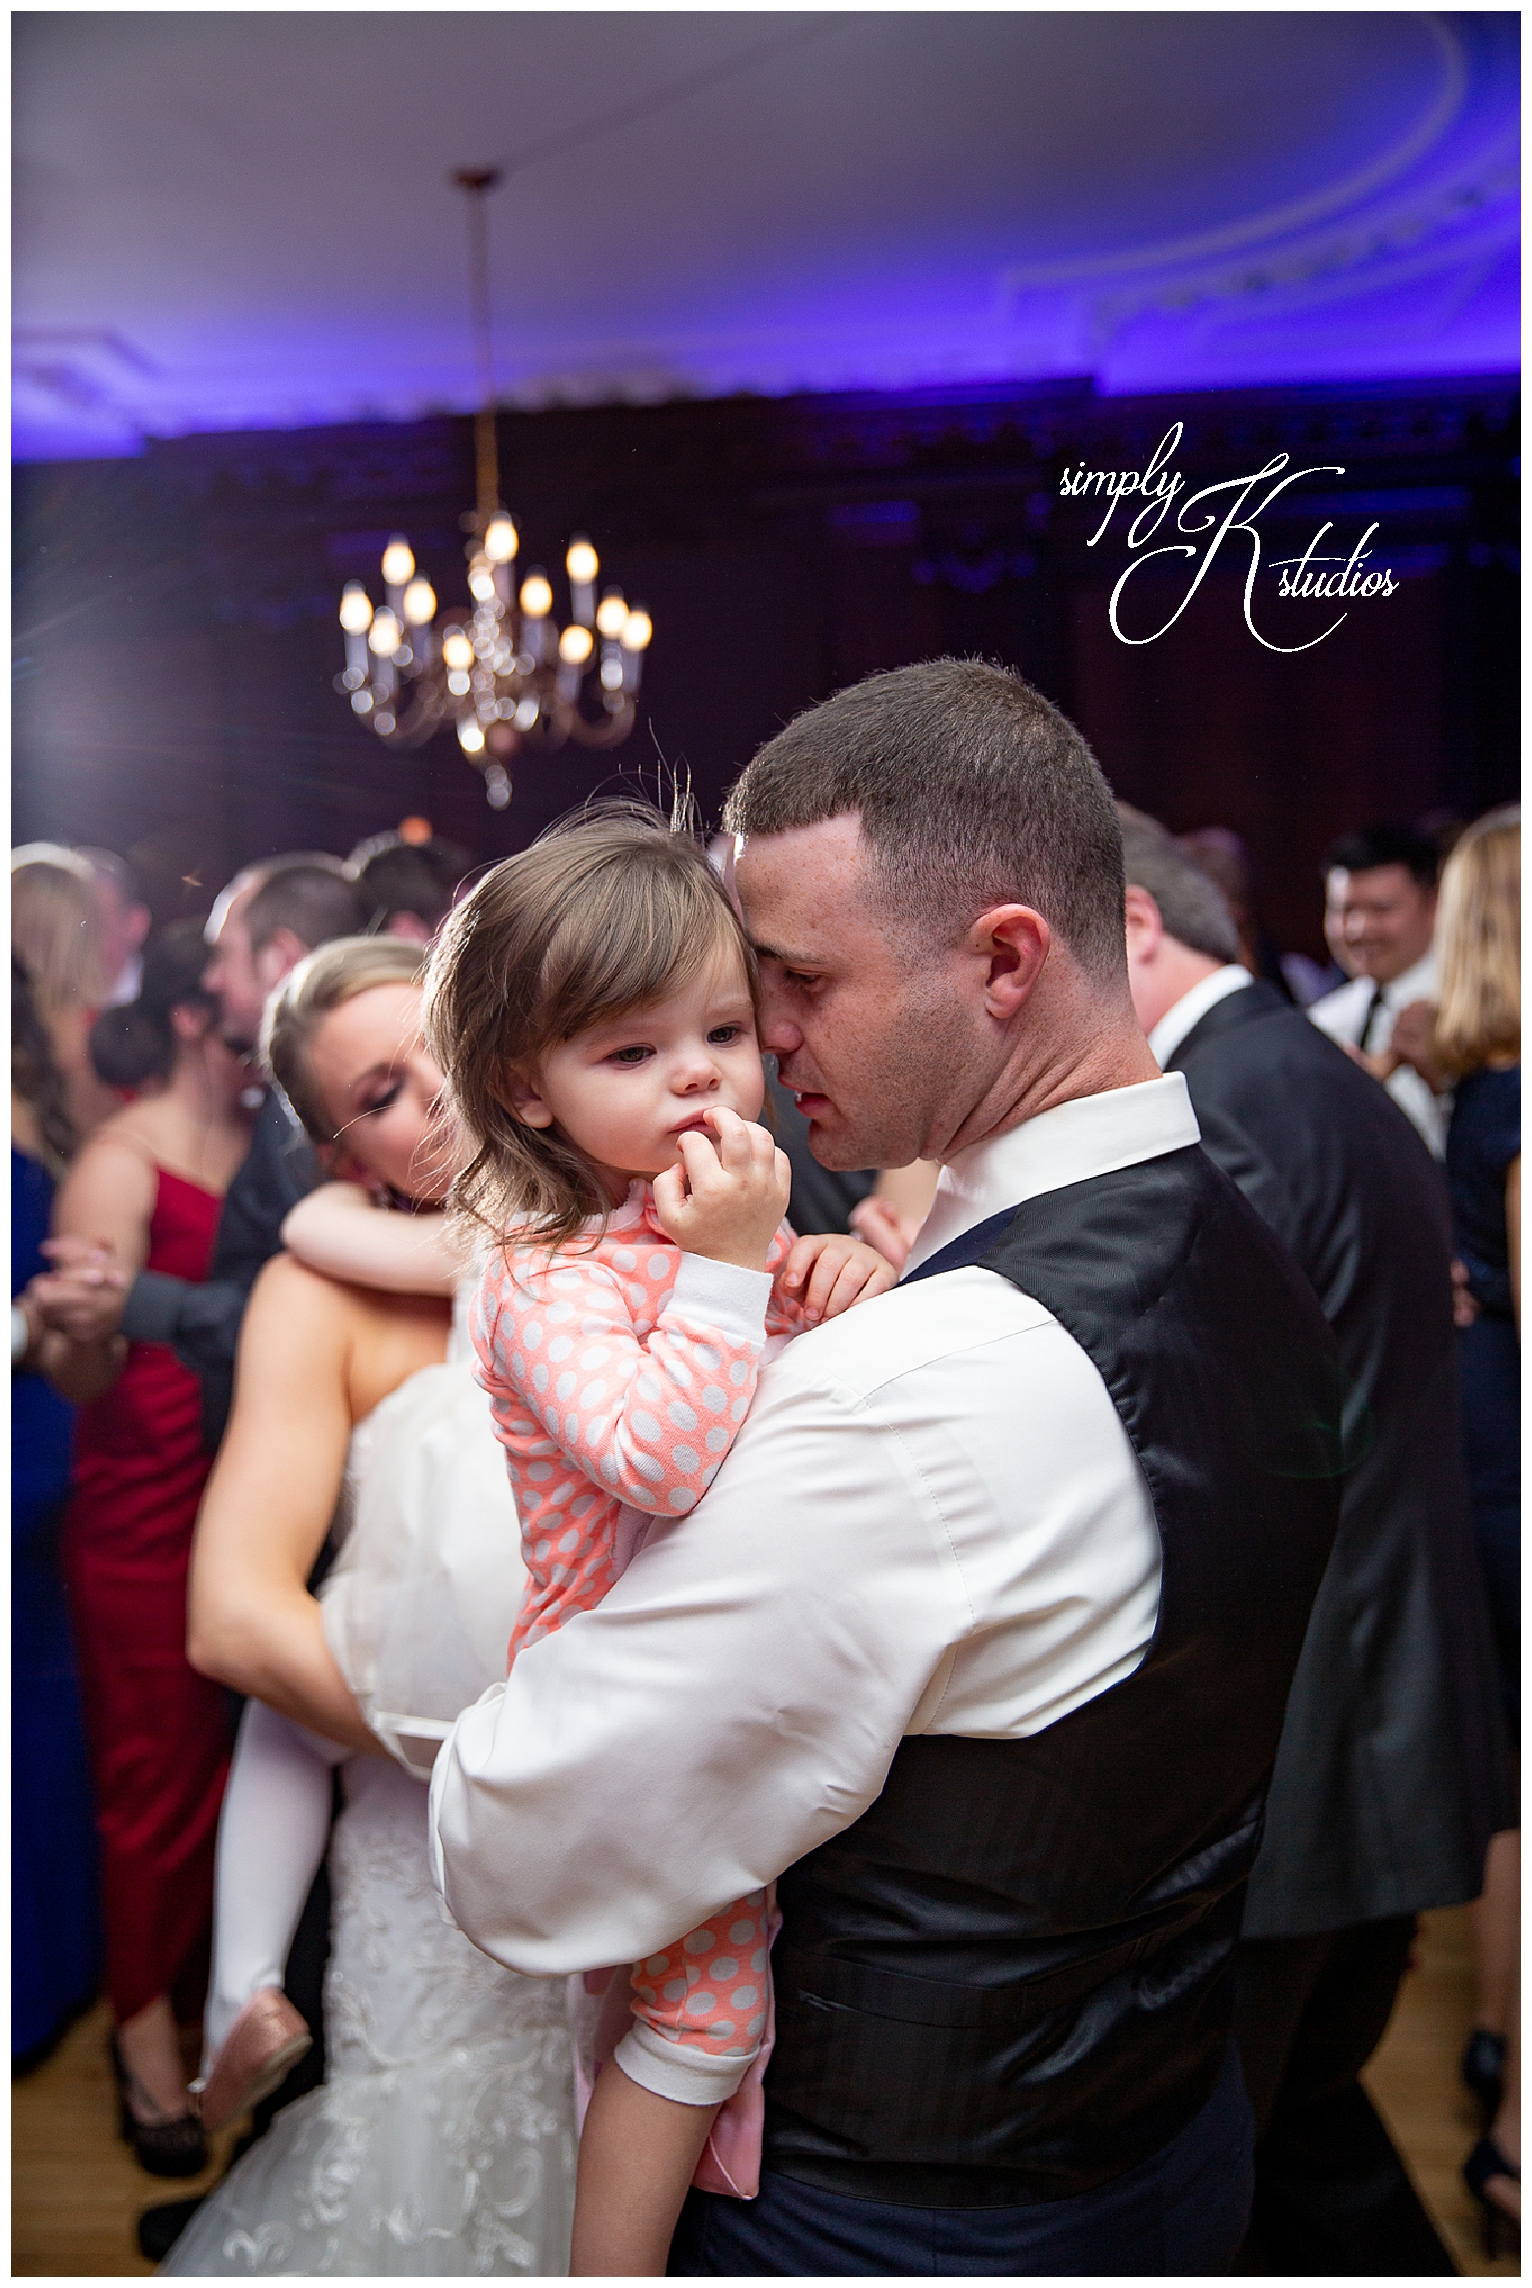 86 Flower Girl Dancing at a Wedding.jpg